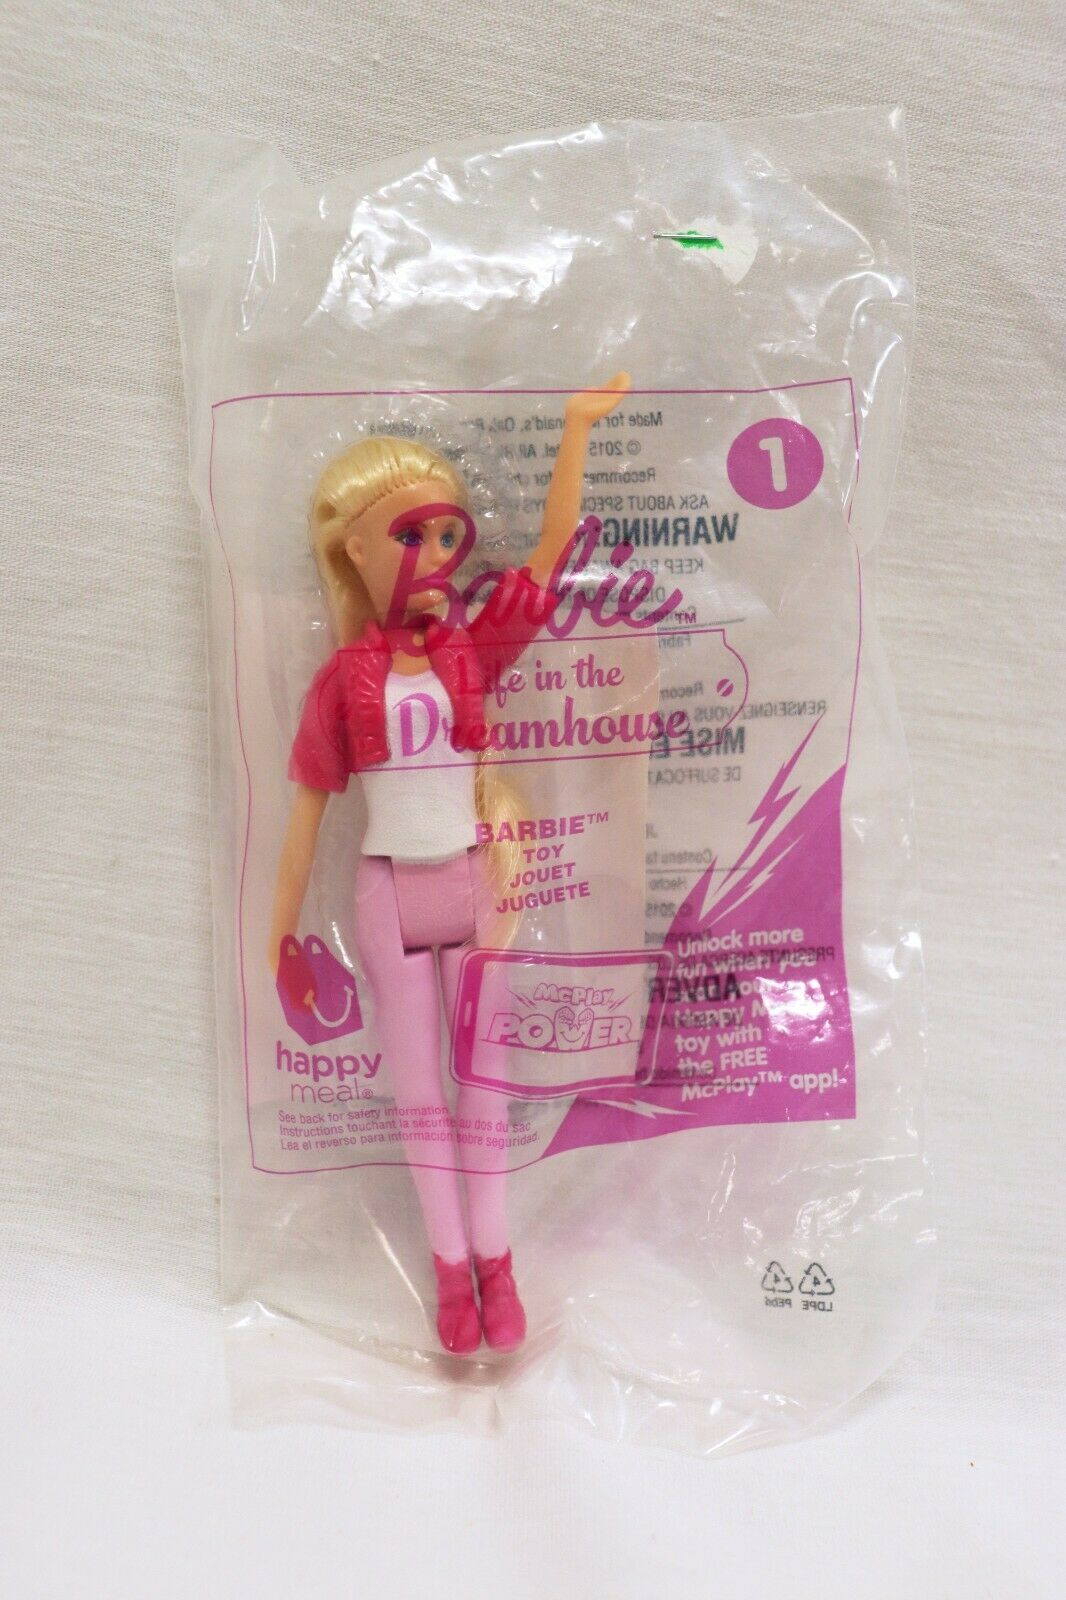 VINTAGE SEALED 2015 McDonald's Life in the Dreamhouse Barbie Doll - $14.84